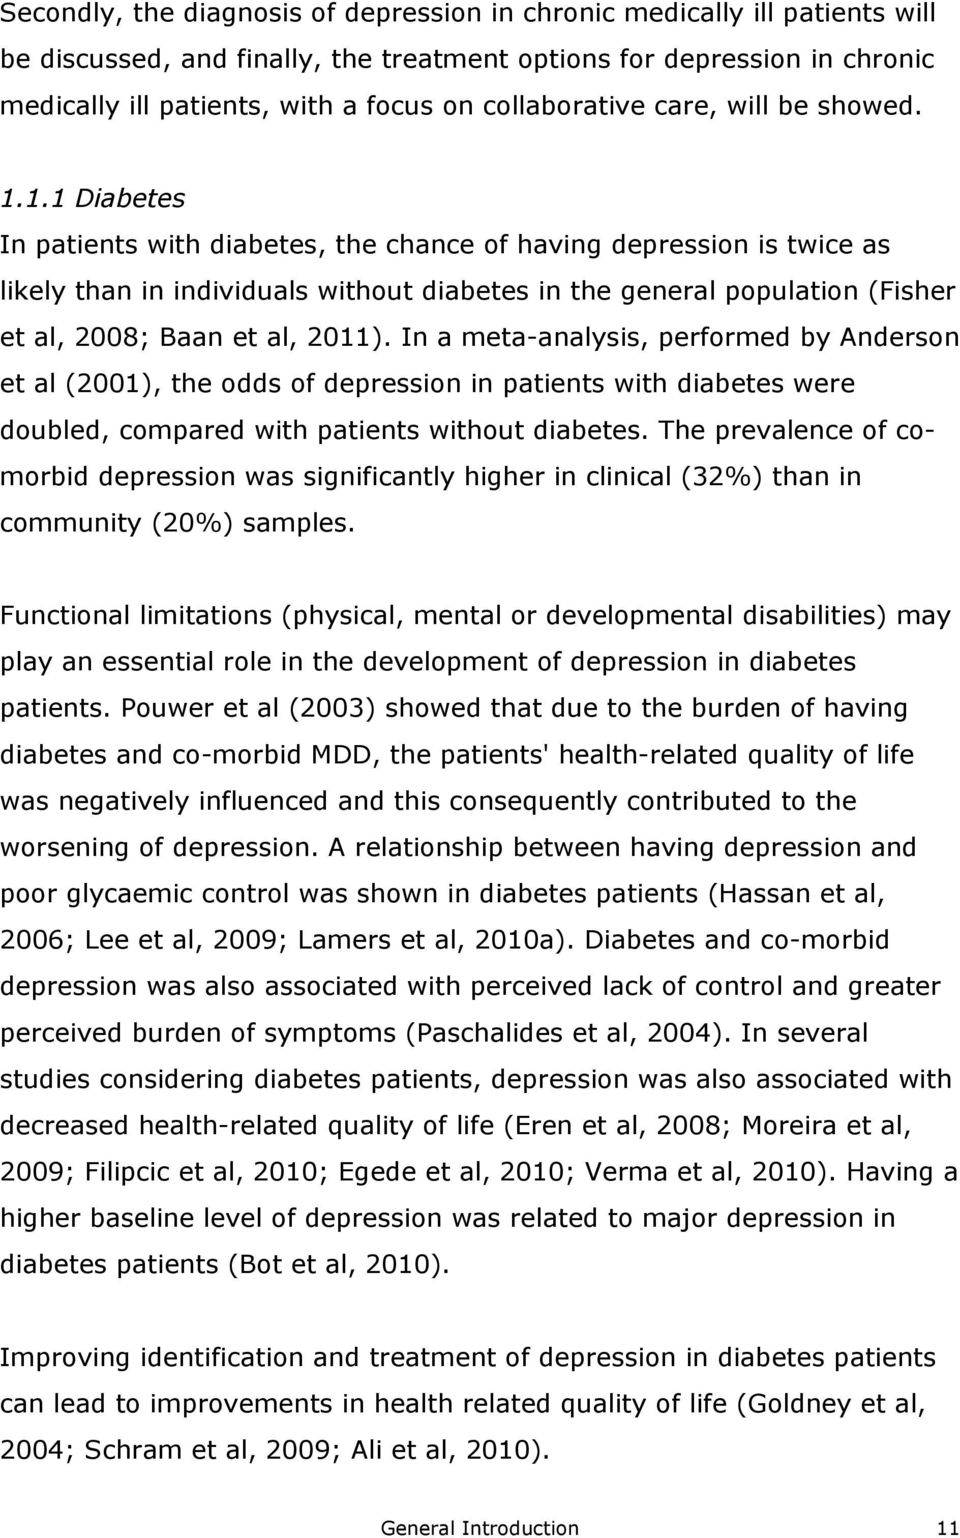 1.1 Diabetes In patients with diabetes, the chance of having depression is twice as likely than in individuals without diabetes in the general population (Fisher et al, 2008; Baan et al, 2011).